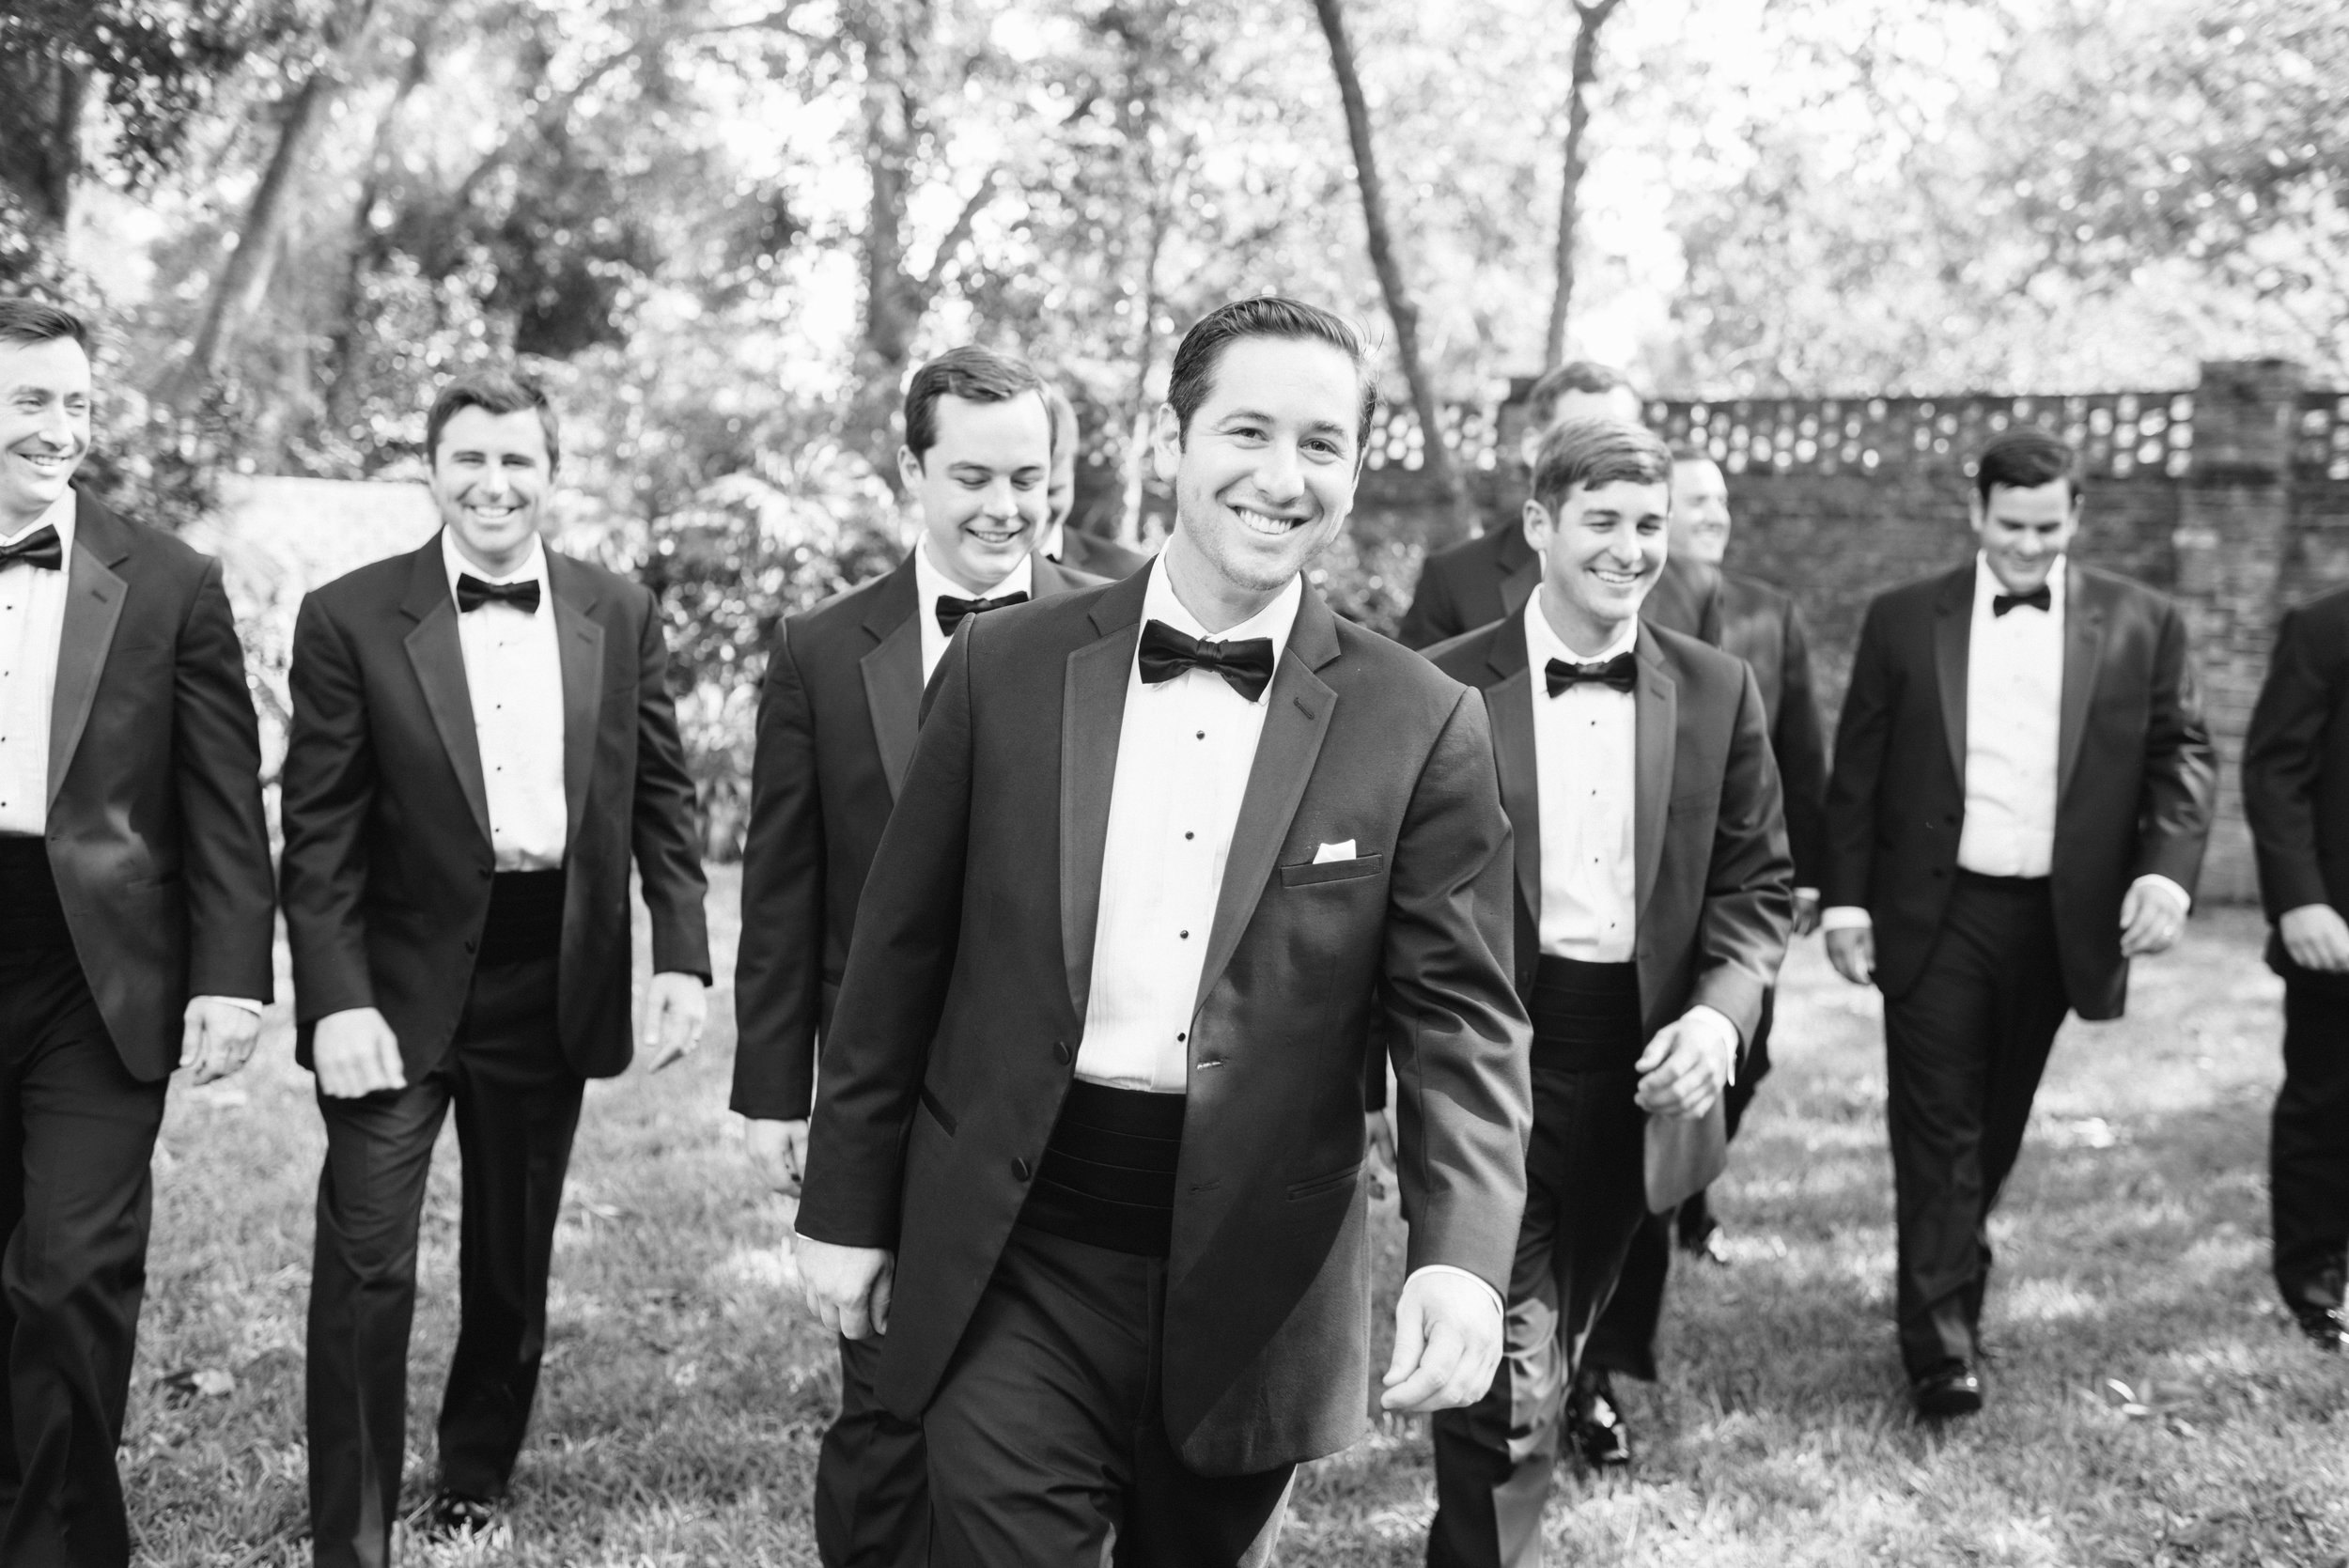 Southern Fete, Southern Wedding, Groom and Groomsman, Sarah Beth Photography